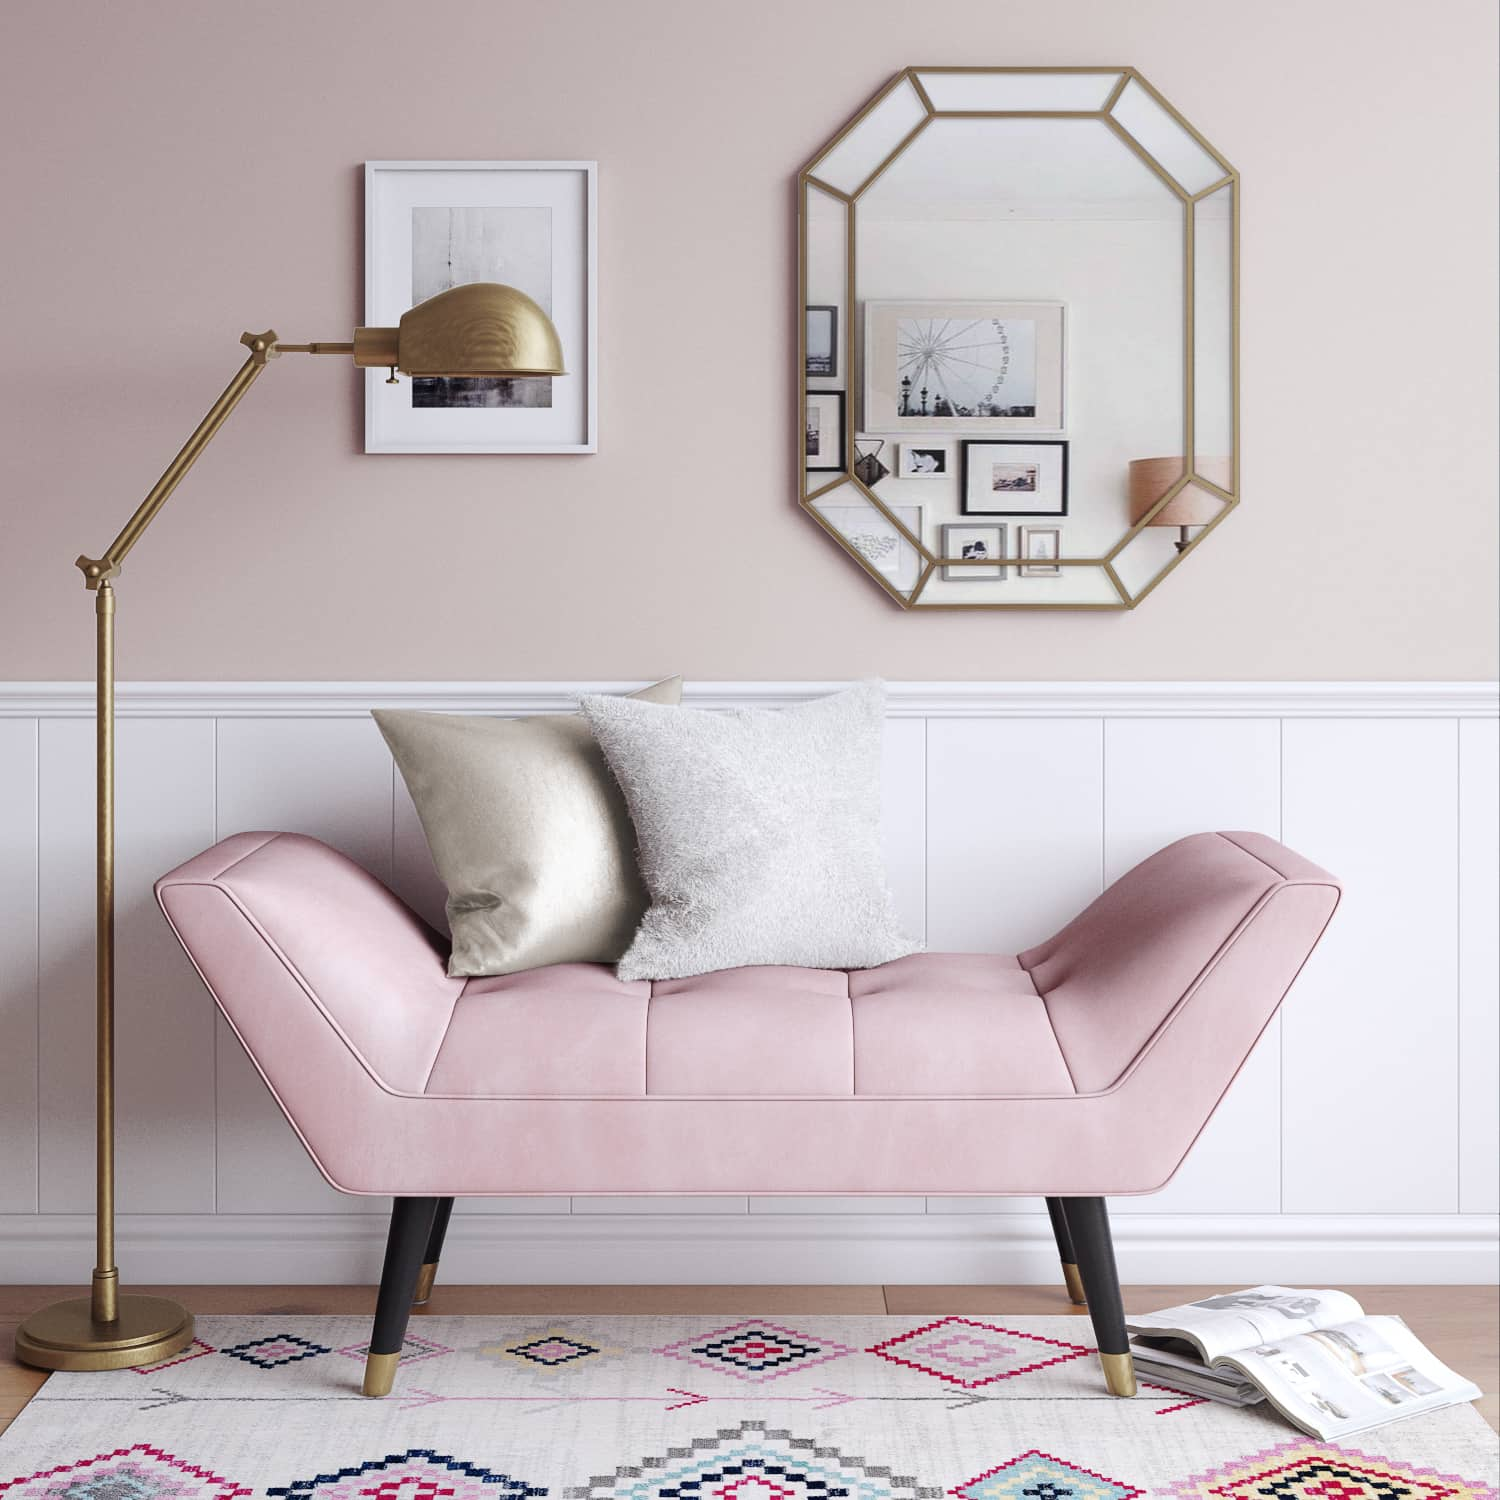 Cosmopolitan Just Launched A Home Decor Line For Small Spaces Gallery Image 3